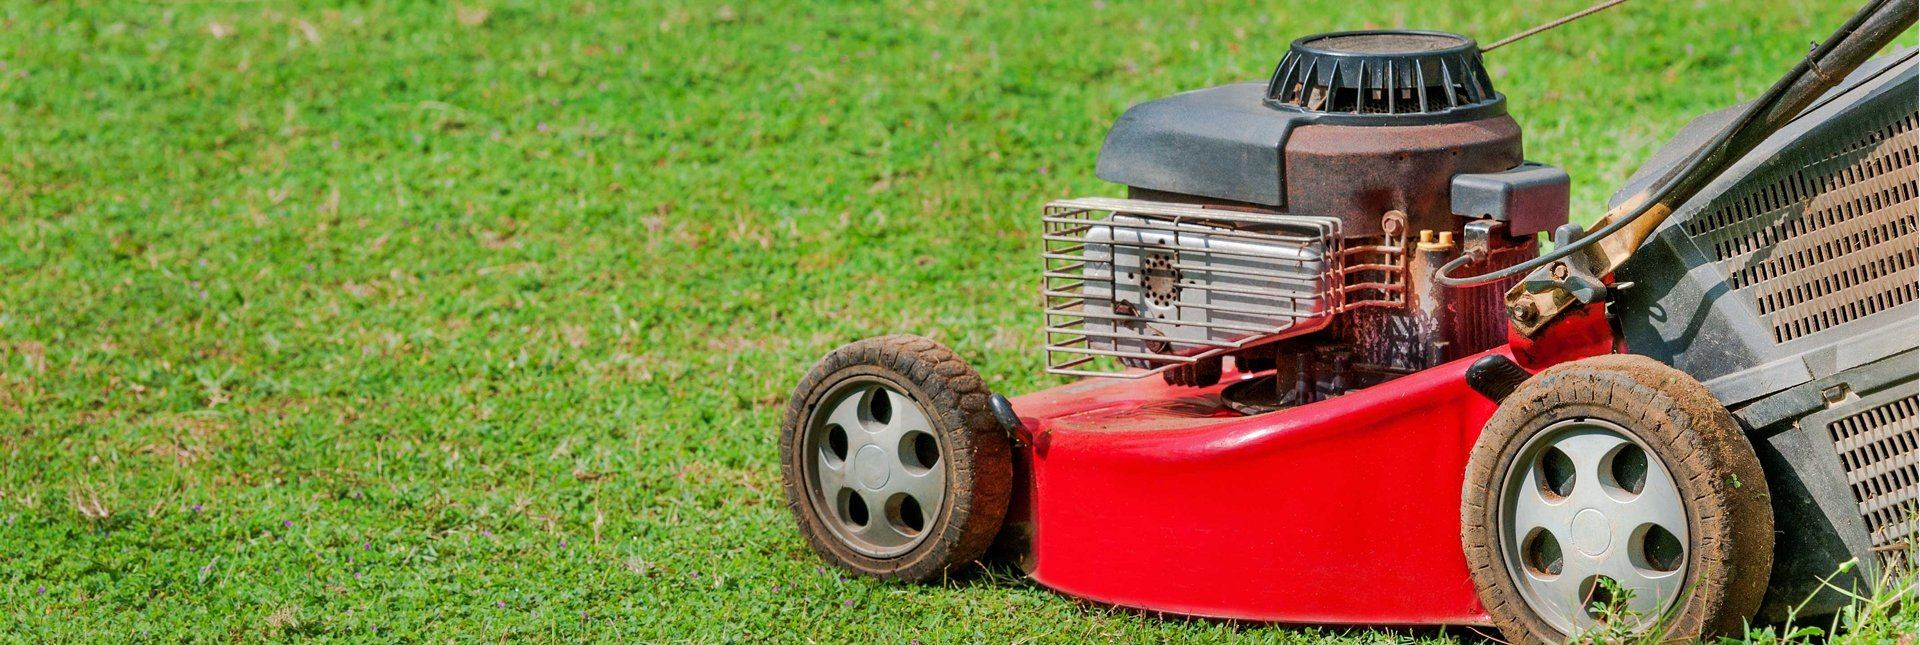 Our regular and seasonal ground maintenance services include: